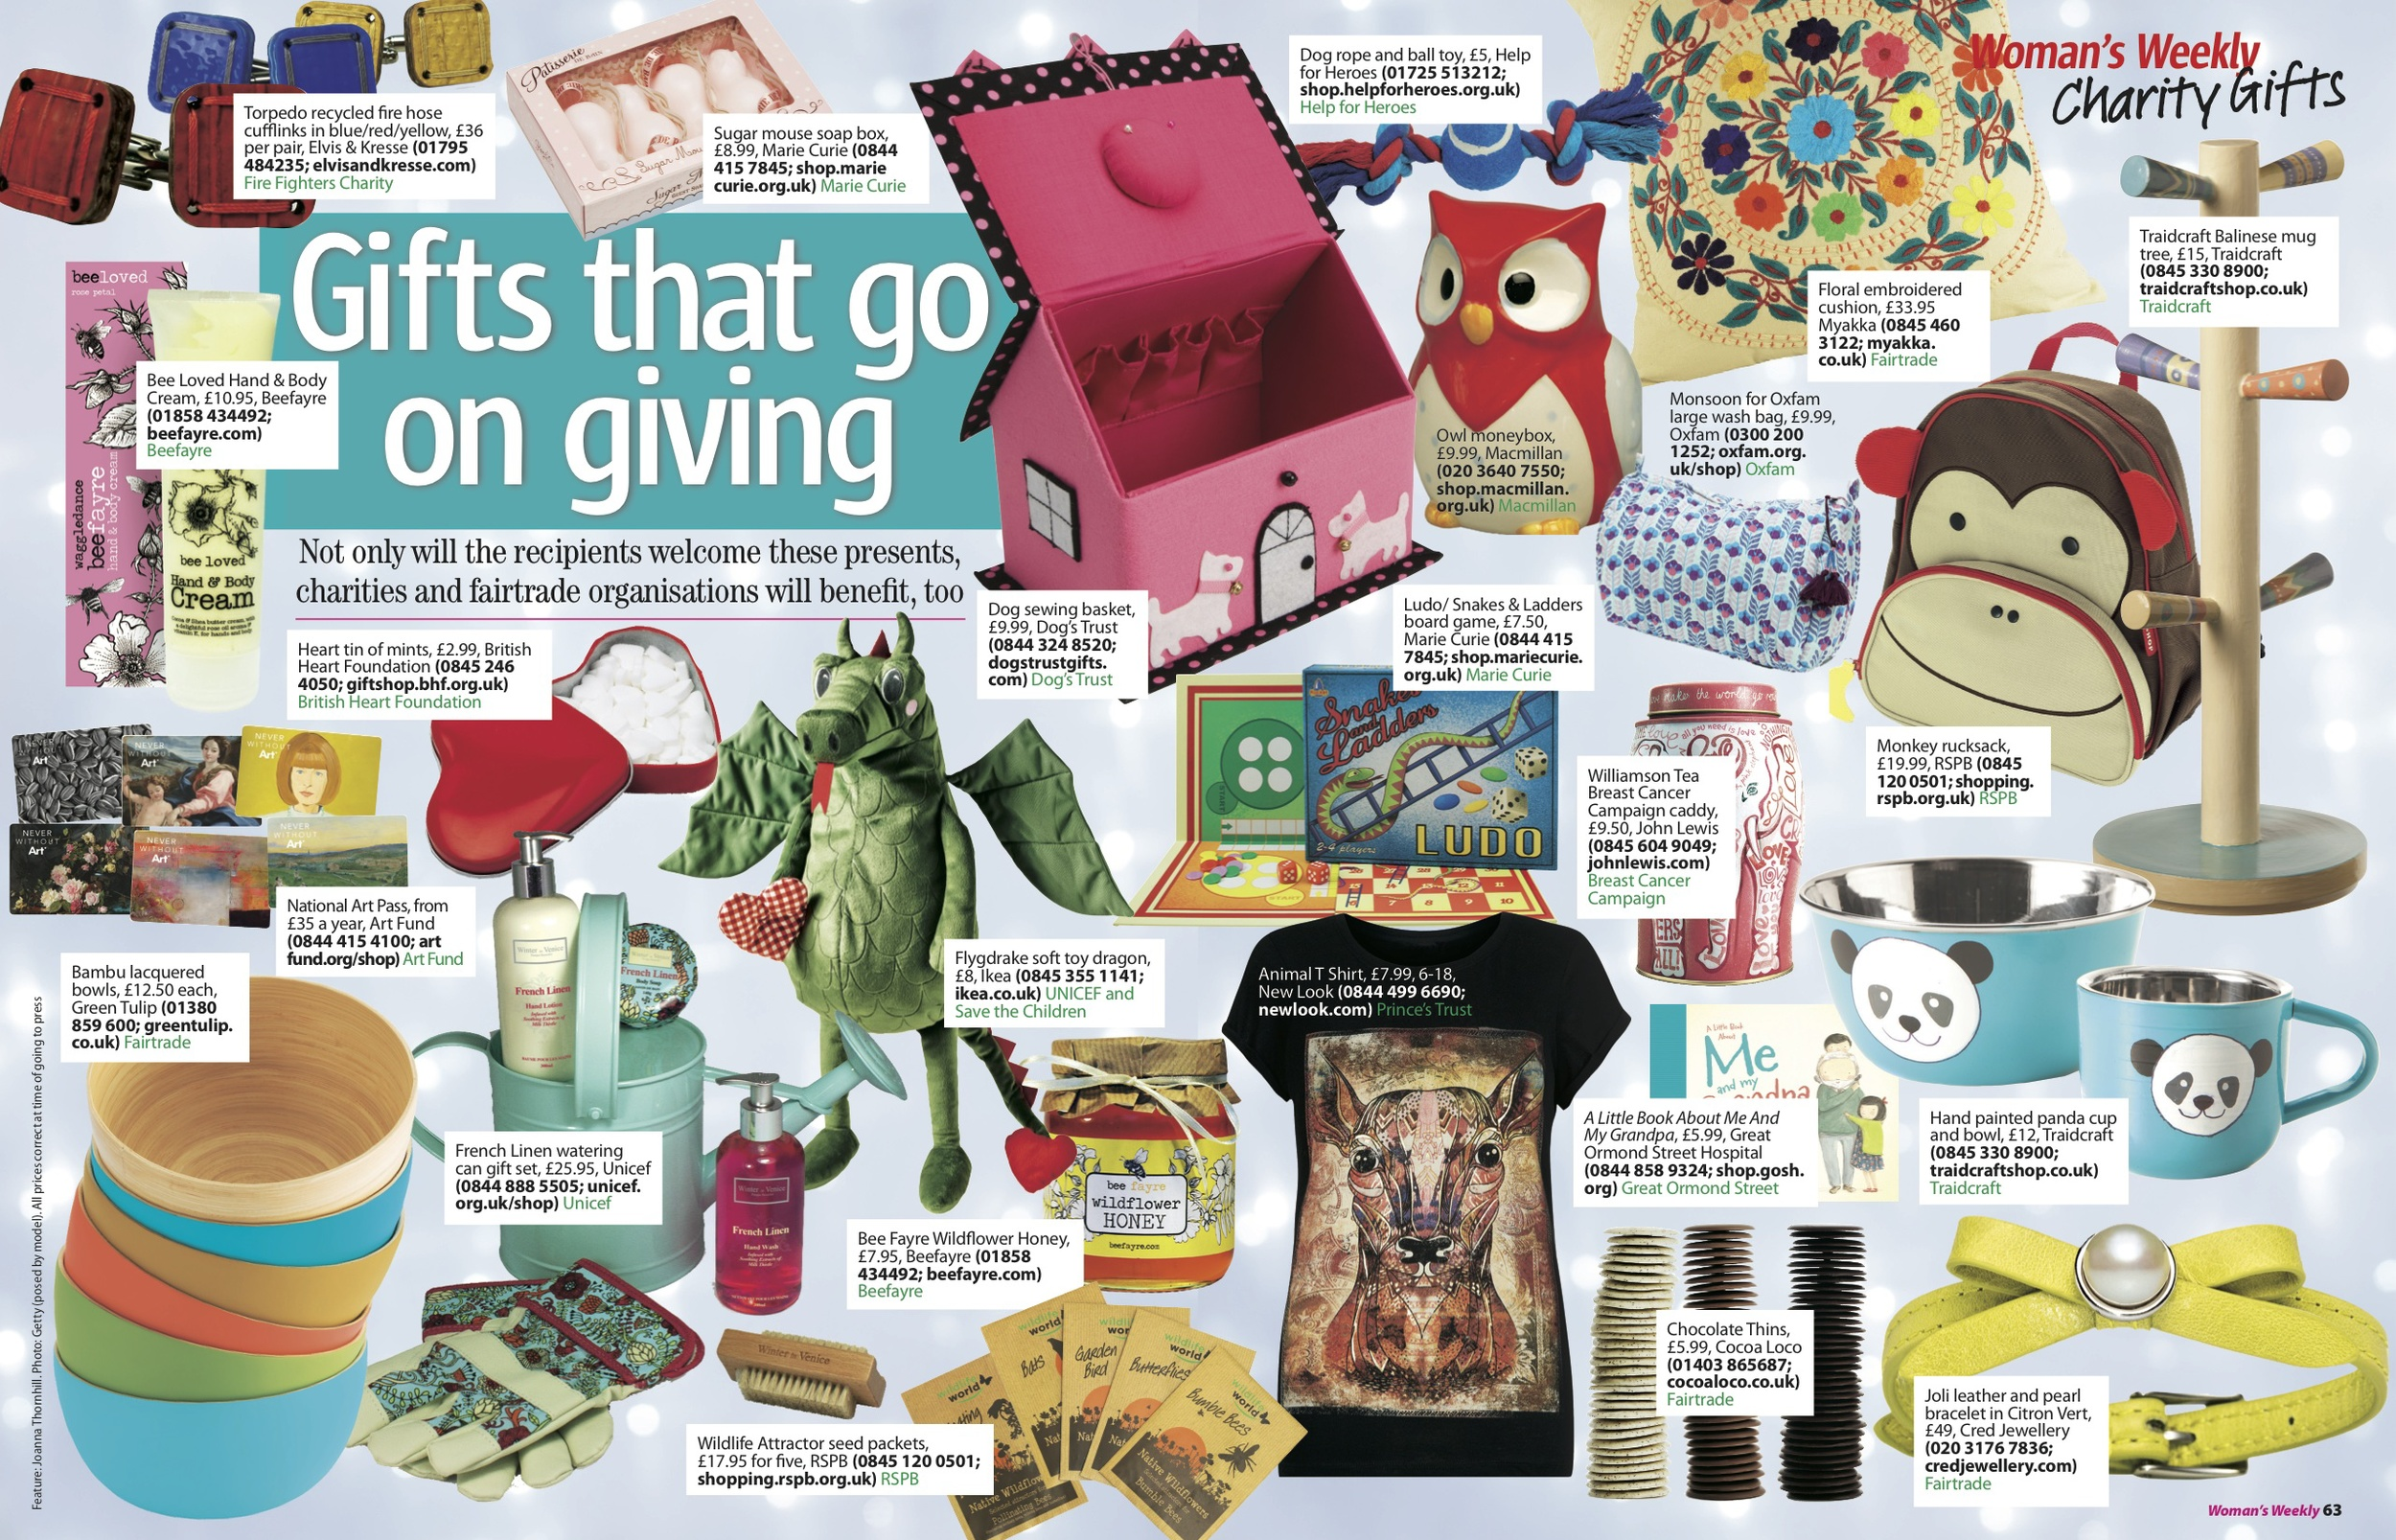 Woman's Weekly Charity Gifts by Joanna Thornhill.jpg